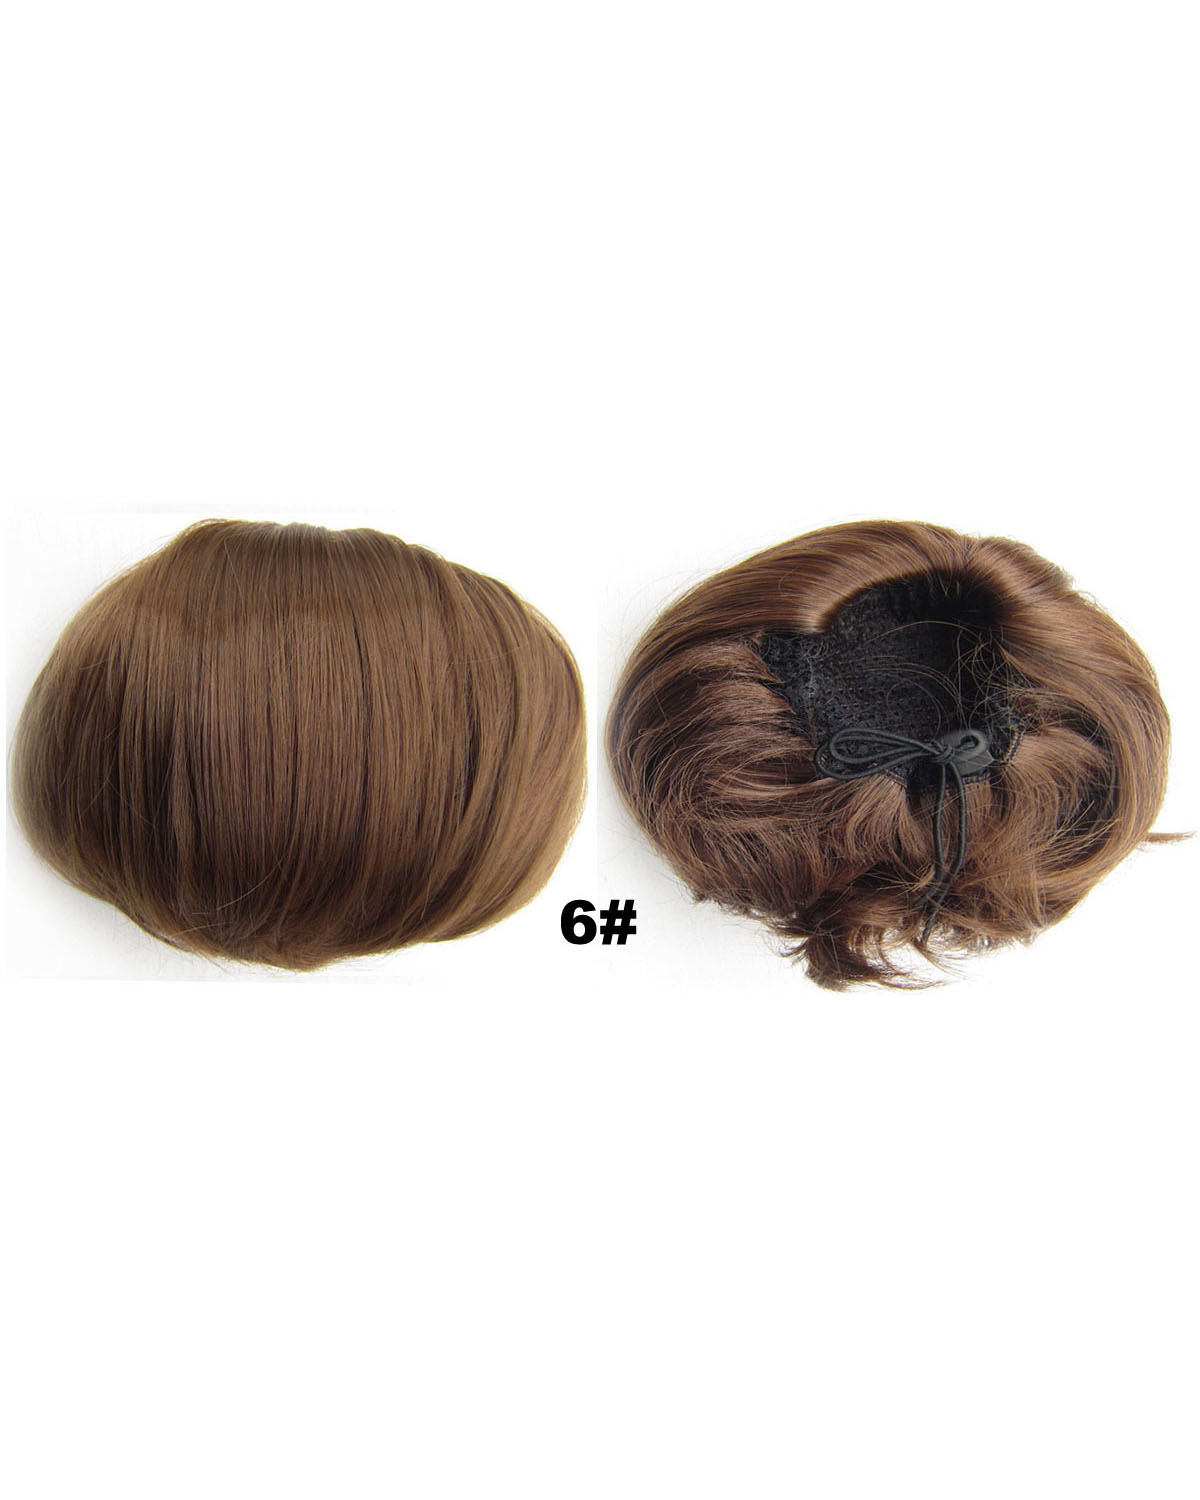 Ladies Seductive Straight Short Hair Buns Drawstring Synthetic Hair Extension Bride Scrunchies 6#